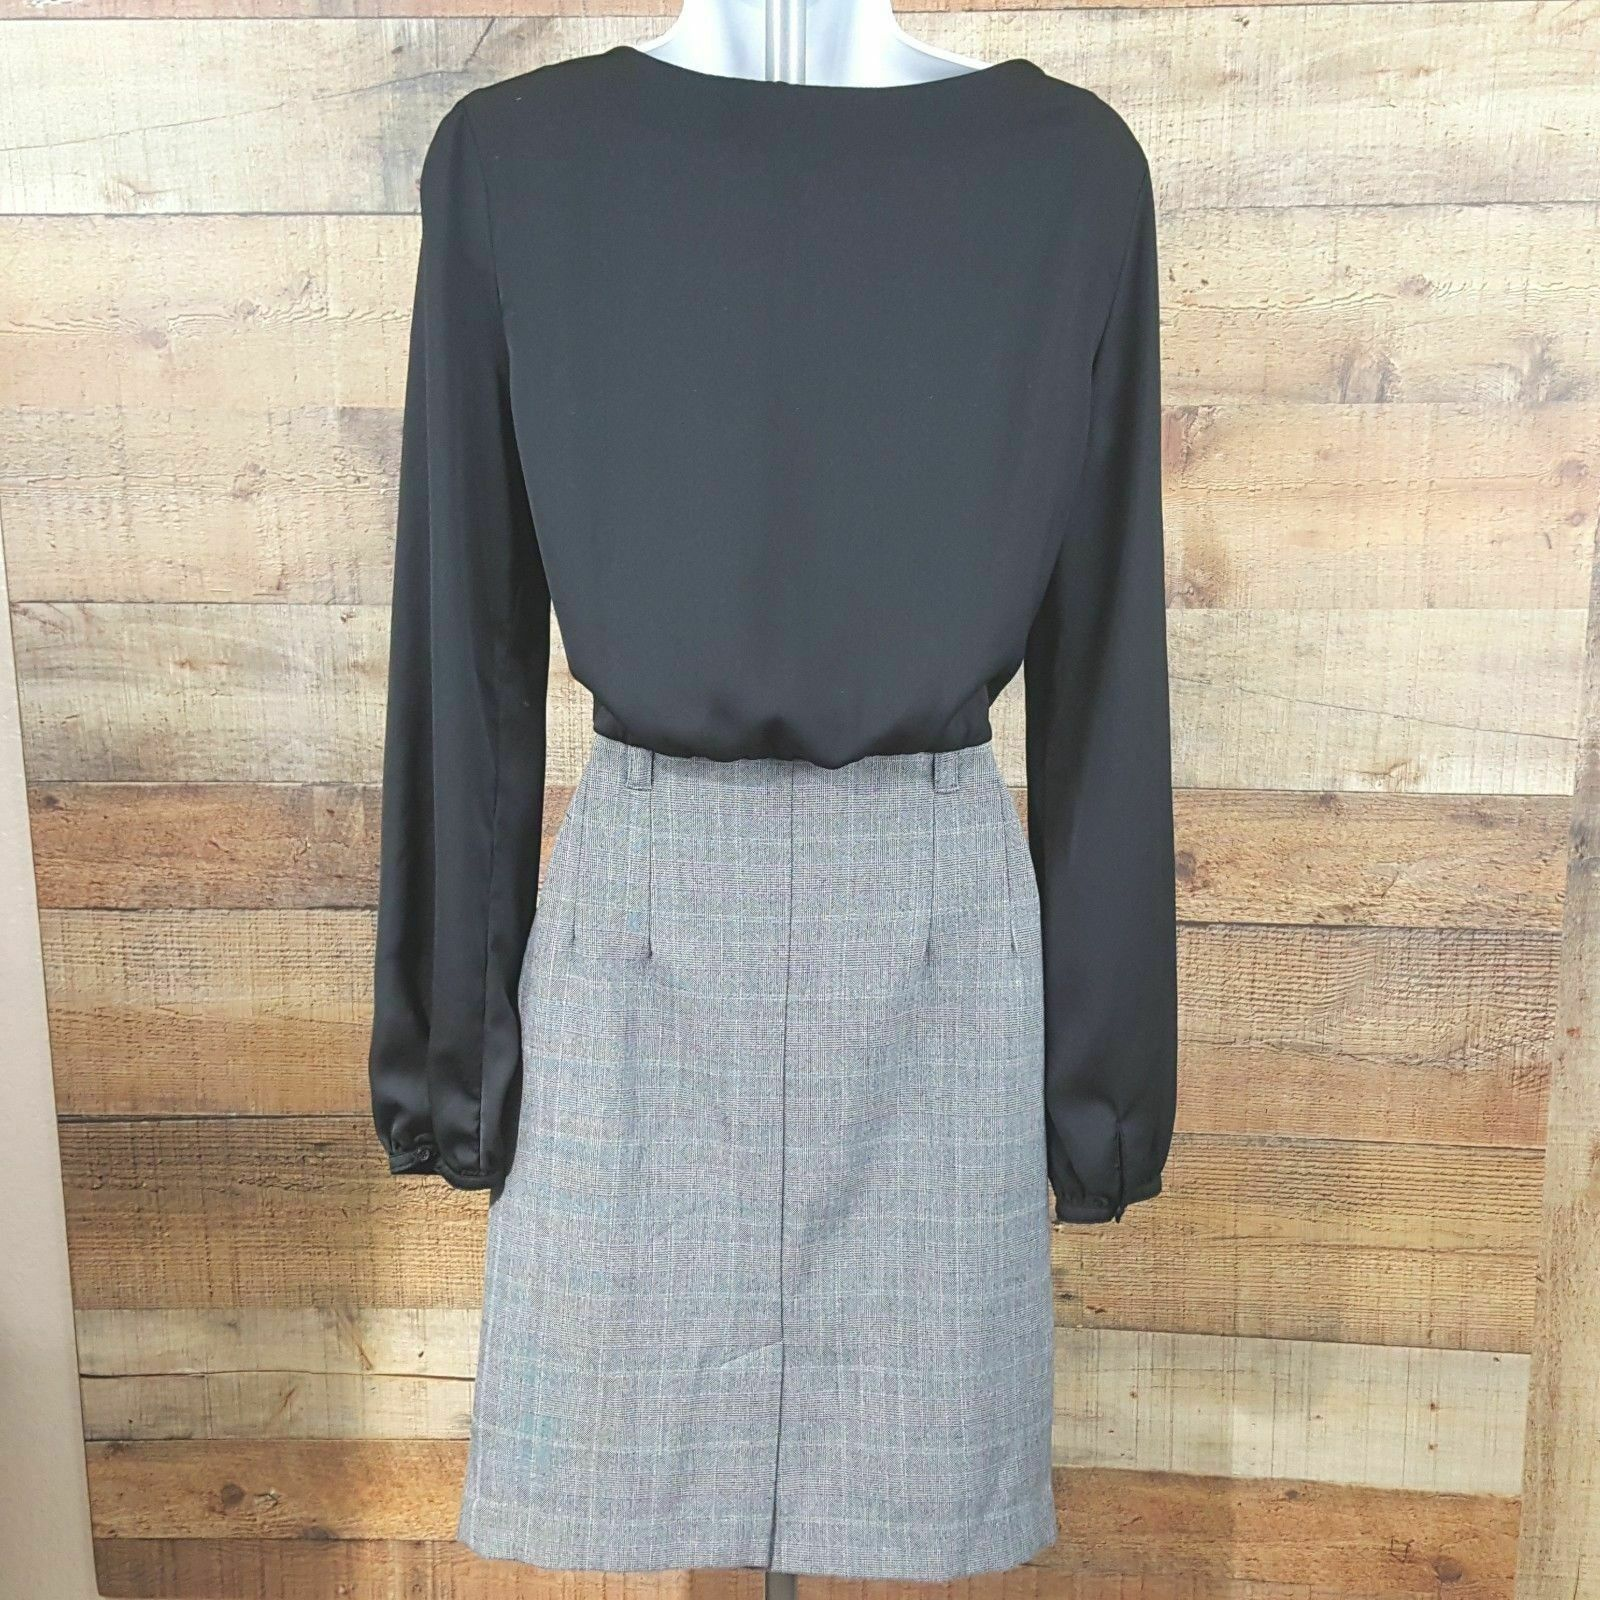 Forever 21 Essentials Dress Women's Size S Black Gray DB13 image 6